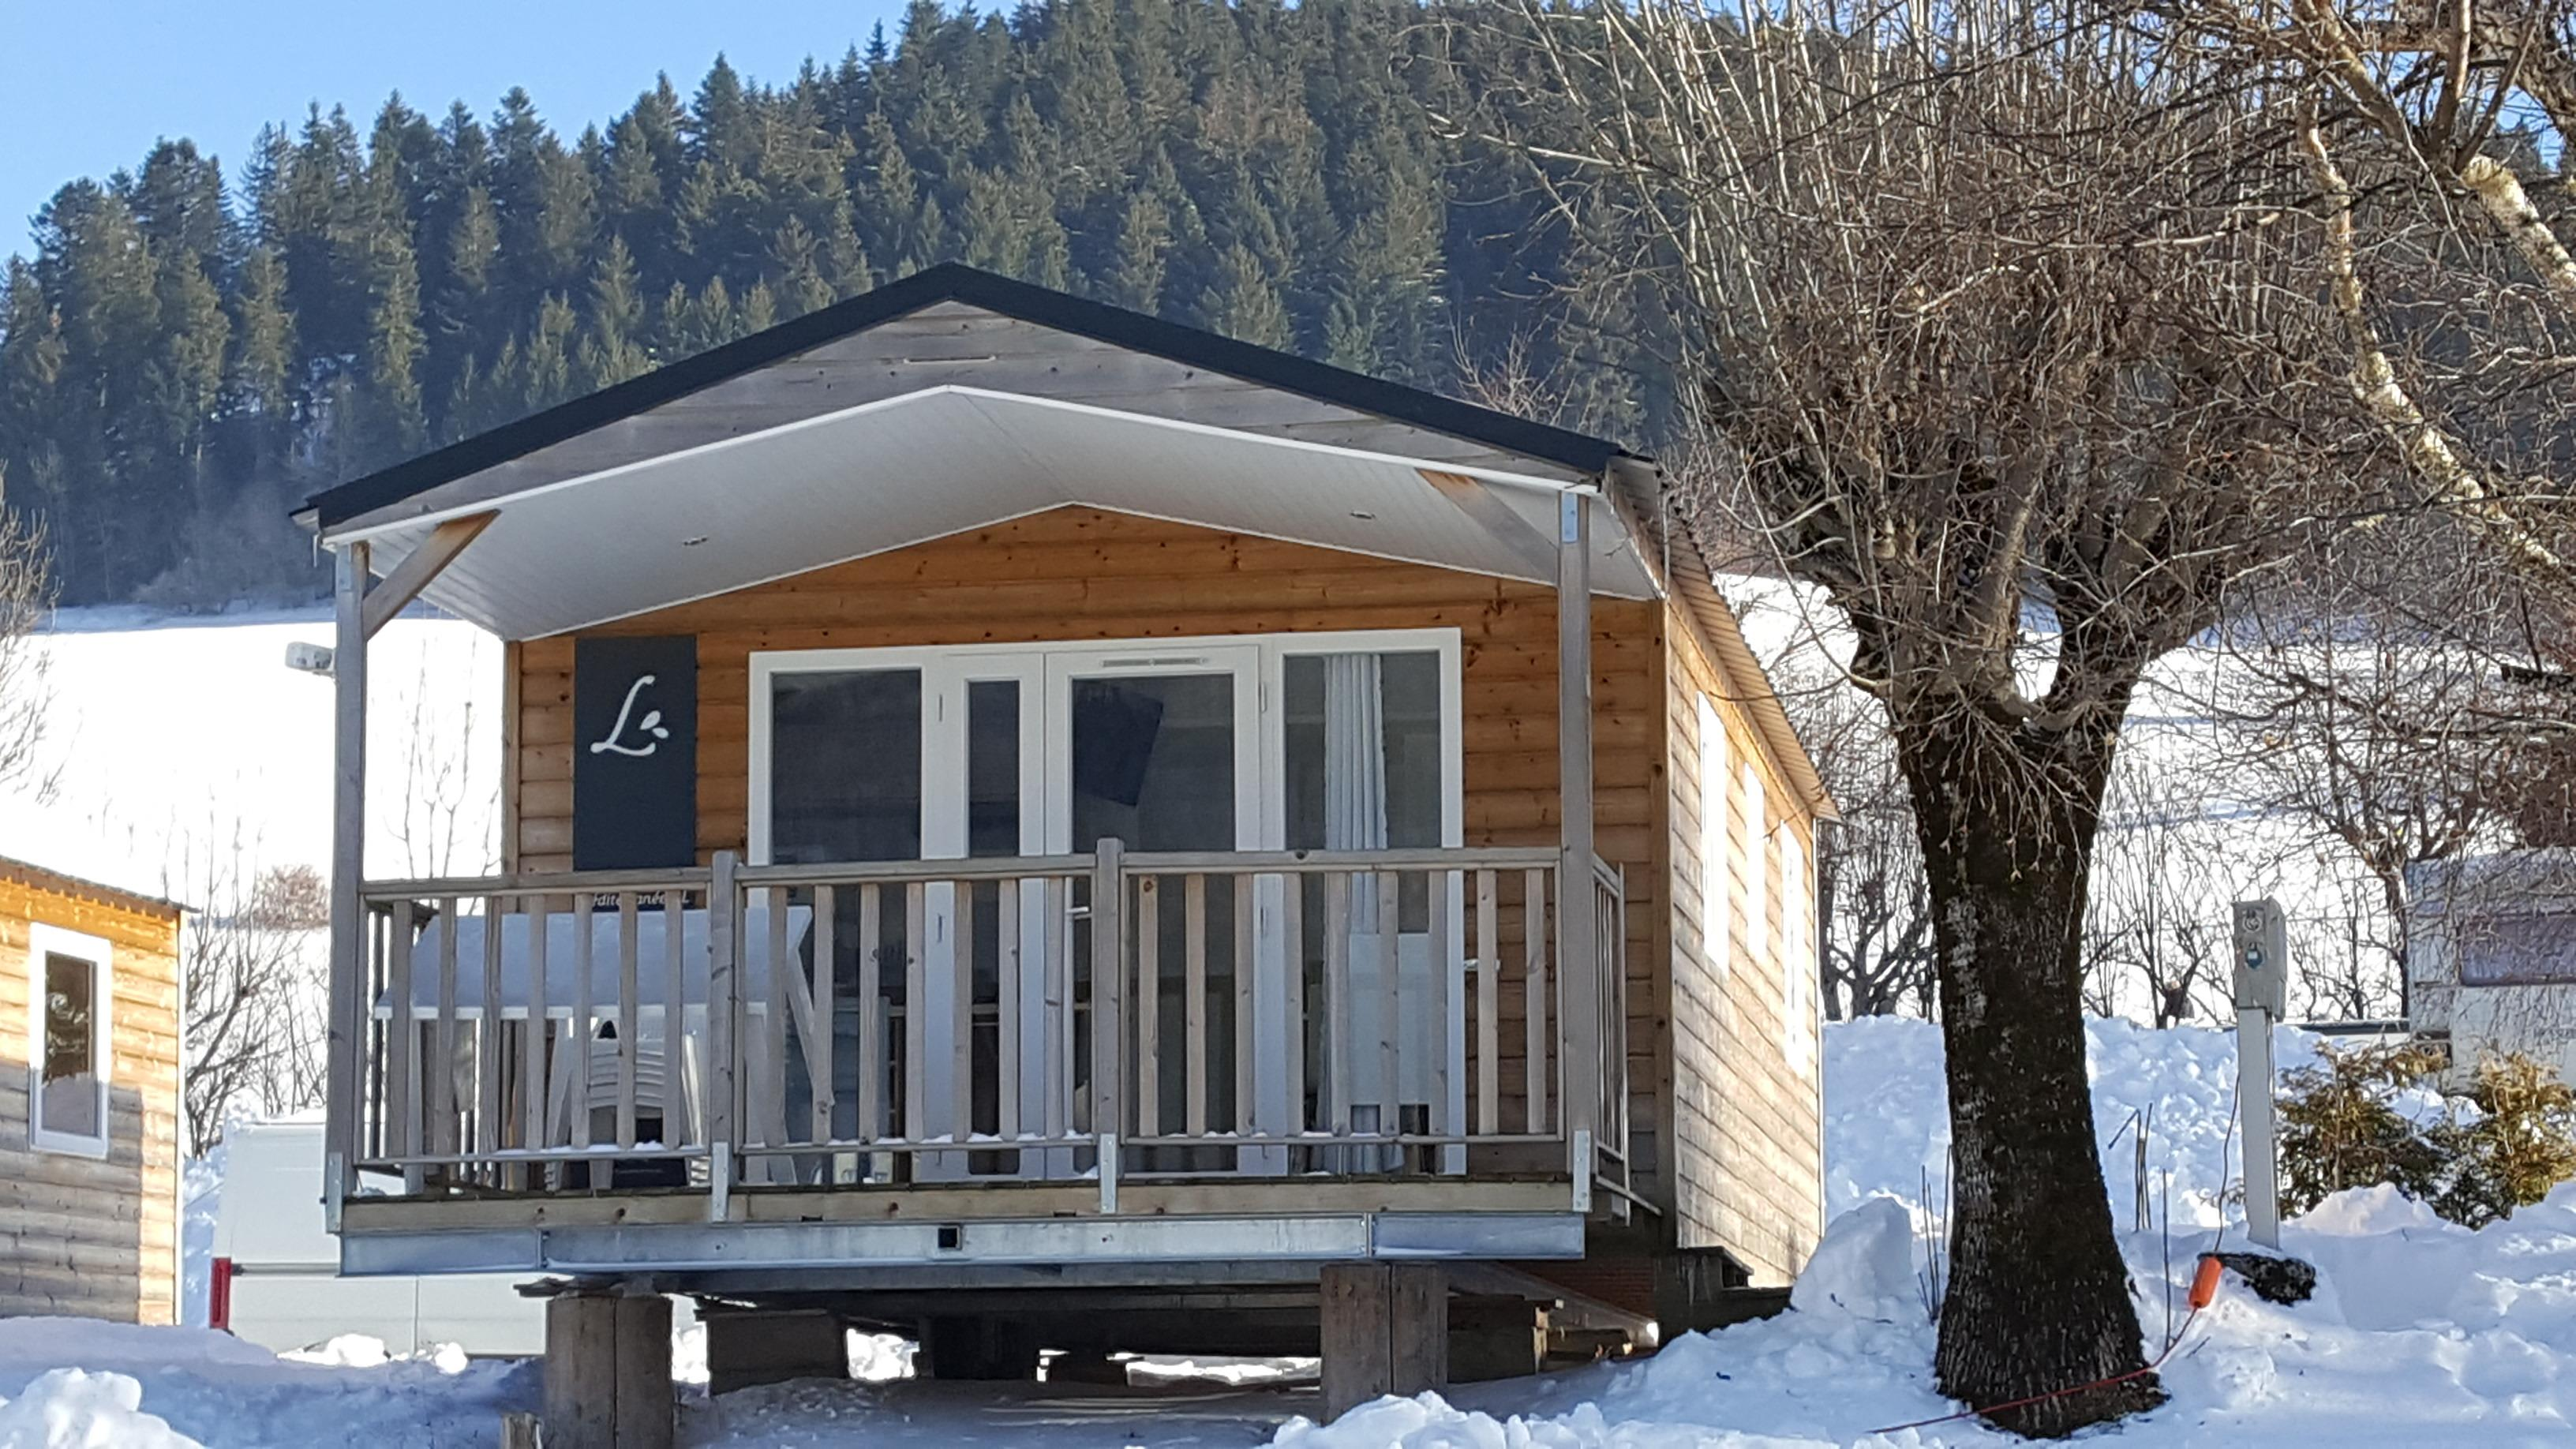 Location - Mobil-Home Confort+ Pensee - 2 Chambres - 26M² + Terrasse Couverte 8M² - Camping Le Vercors